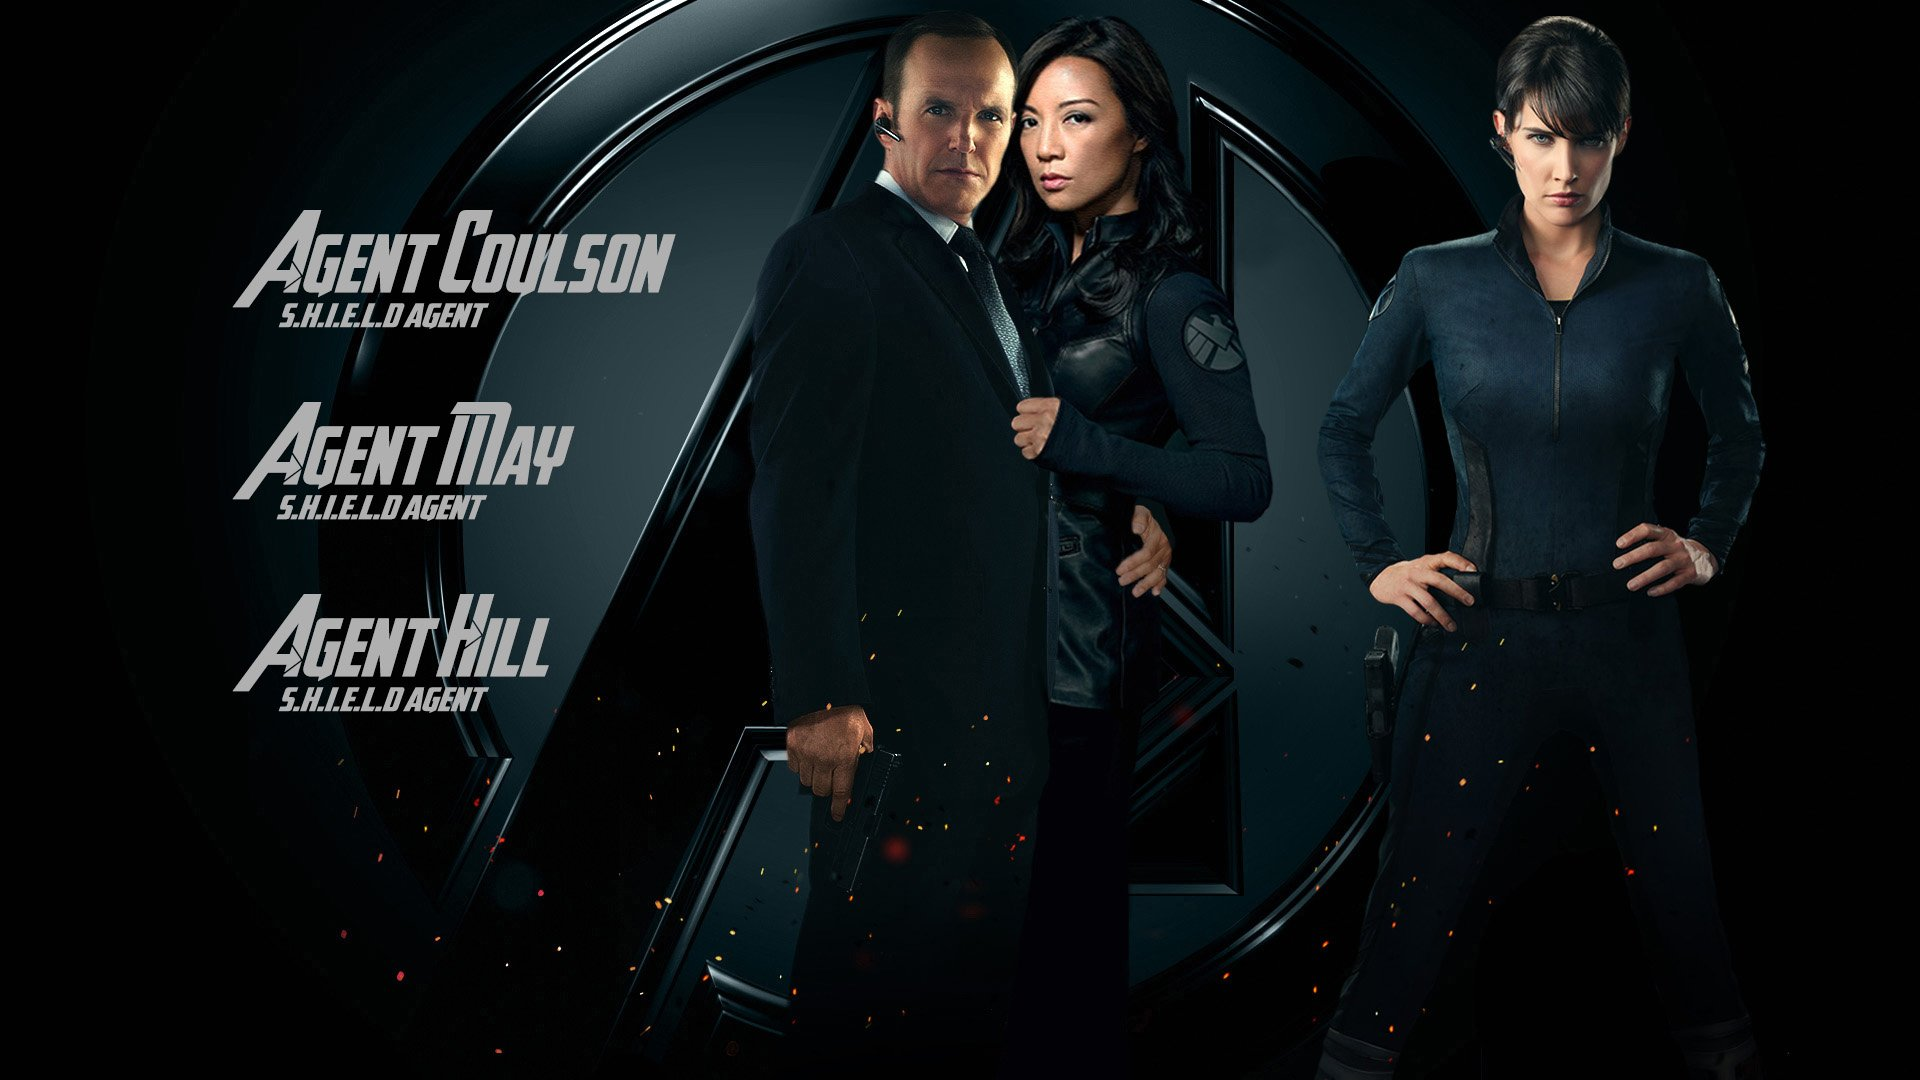 AGENTS OF SHIELD action drama sci fi marvel comic series crime 44 1920x1080